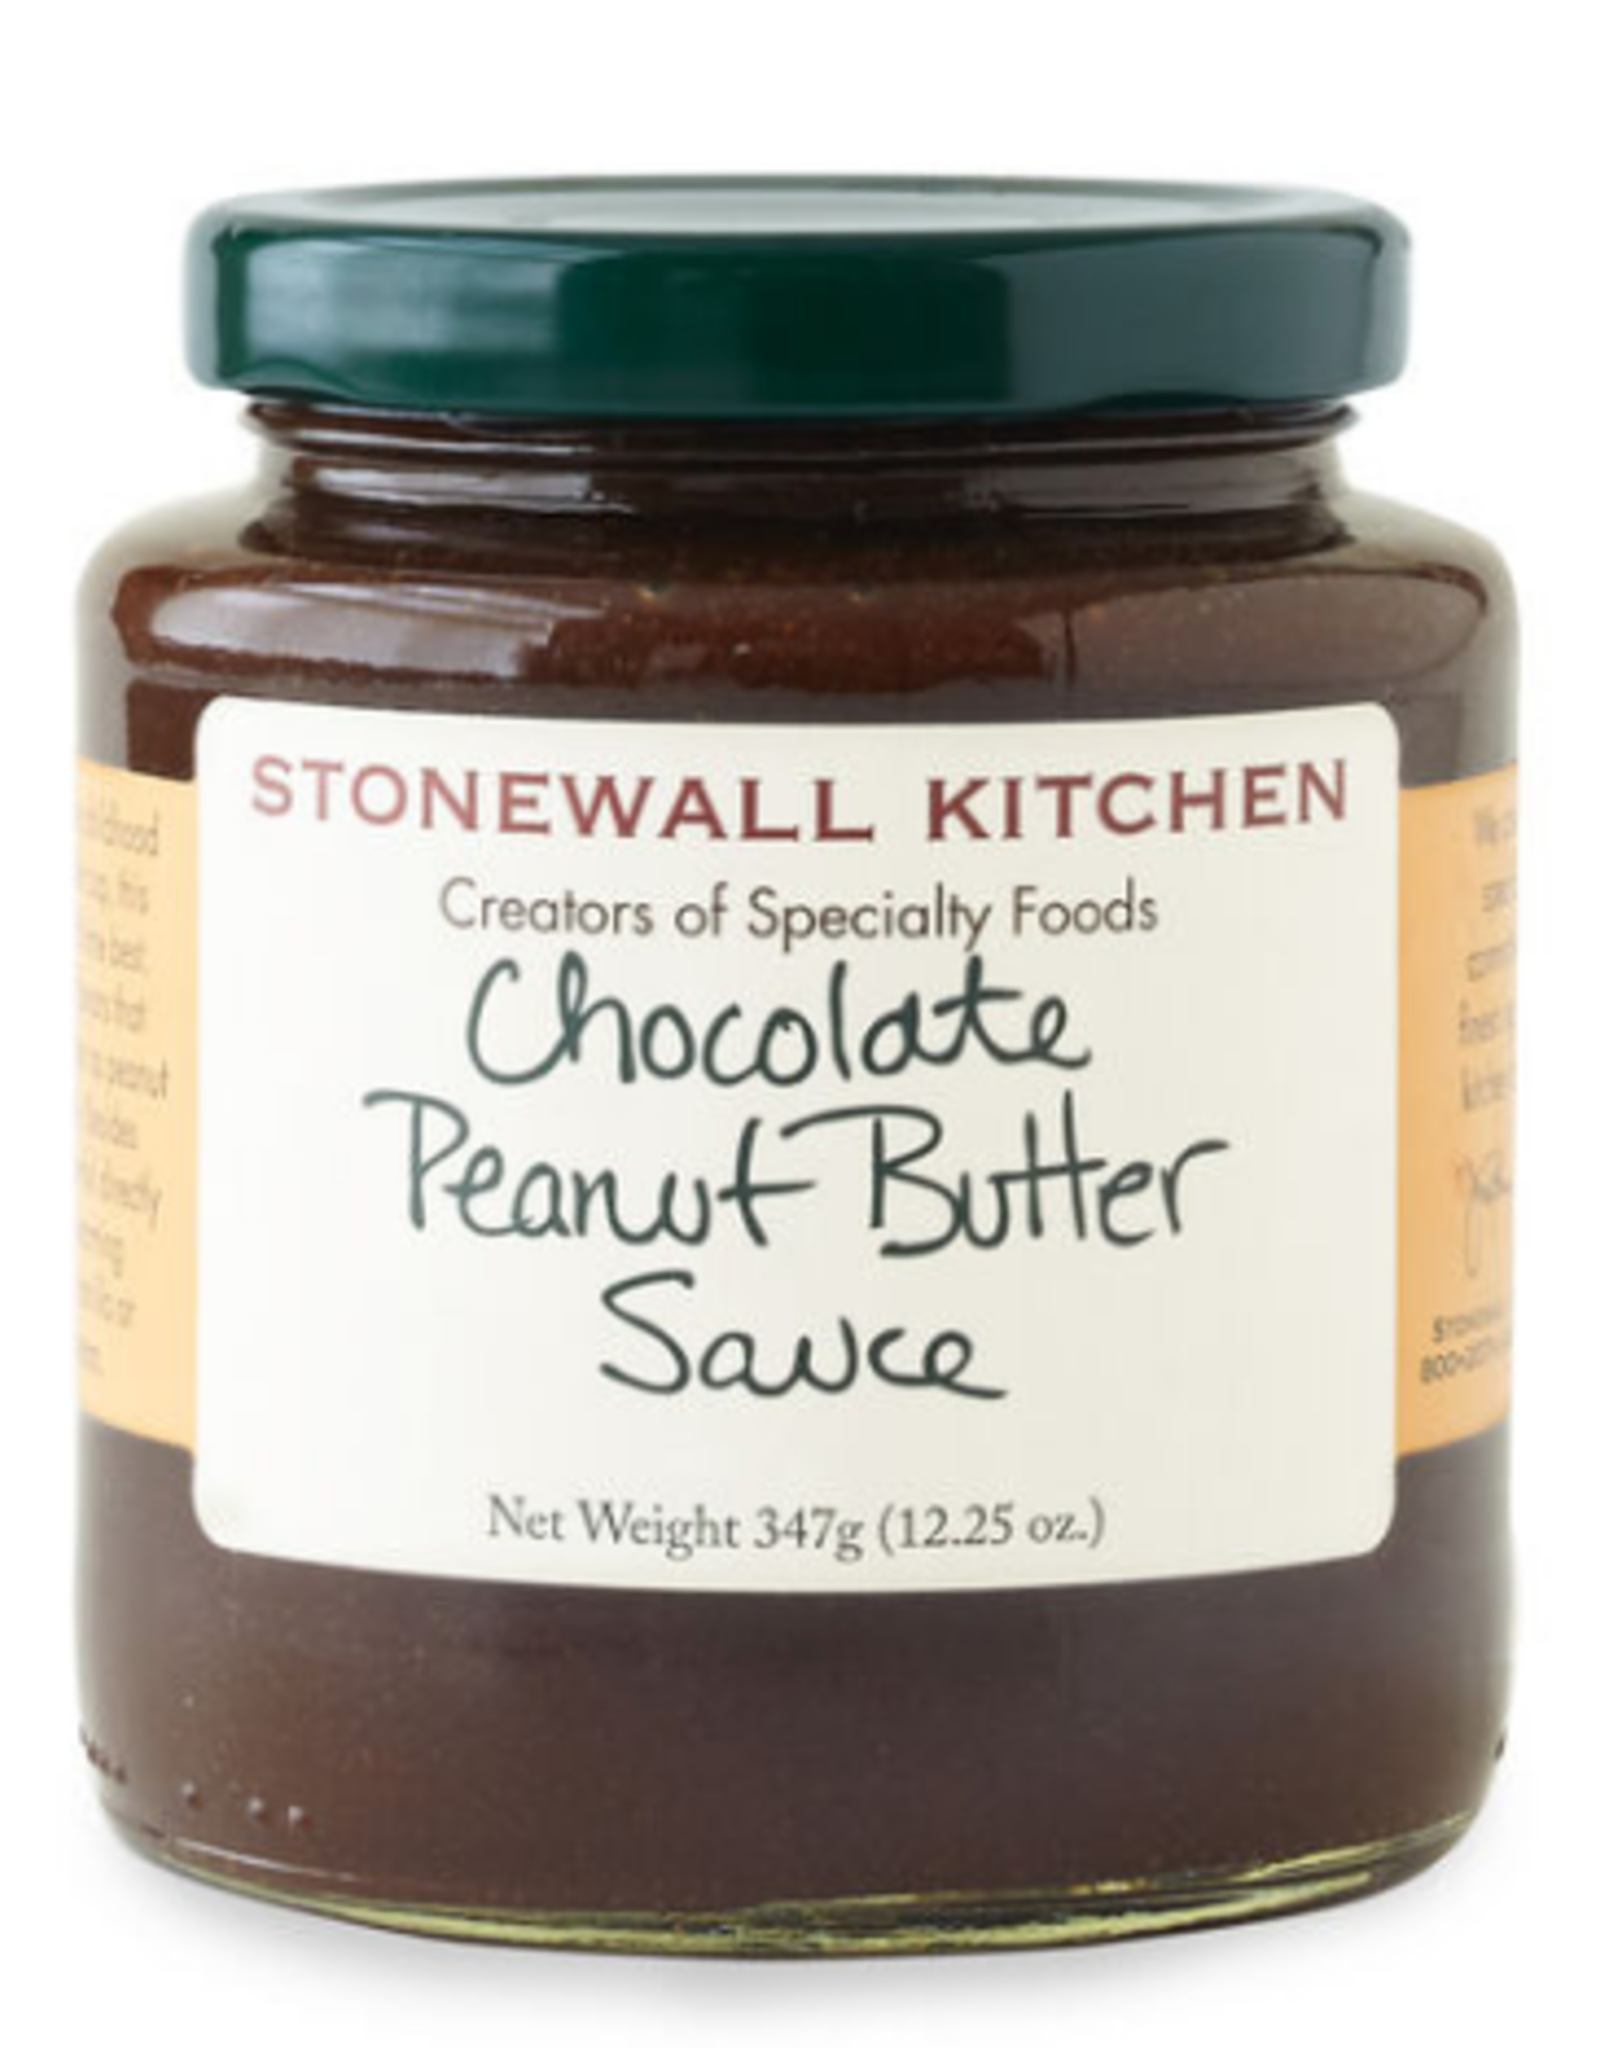 Stonewall Kitchen Chocolate Peanut Butter Sauce